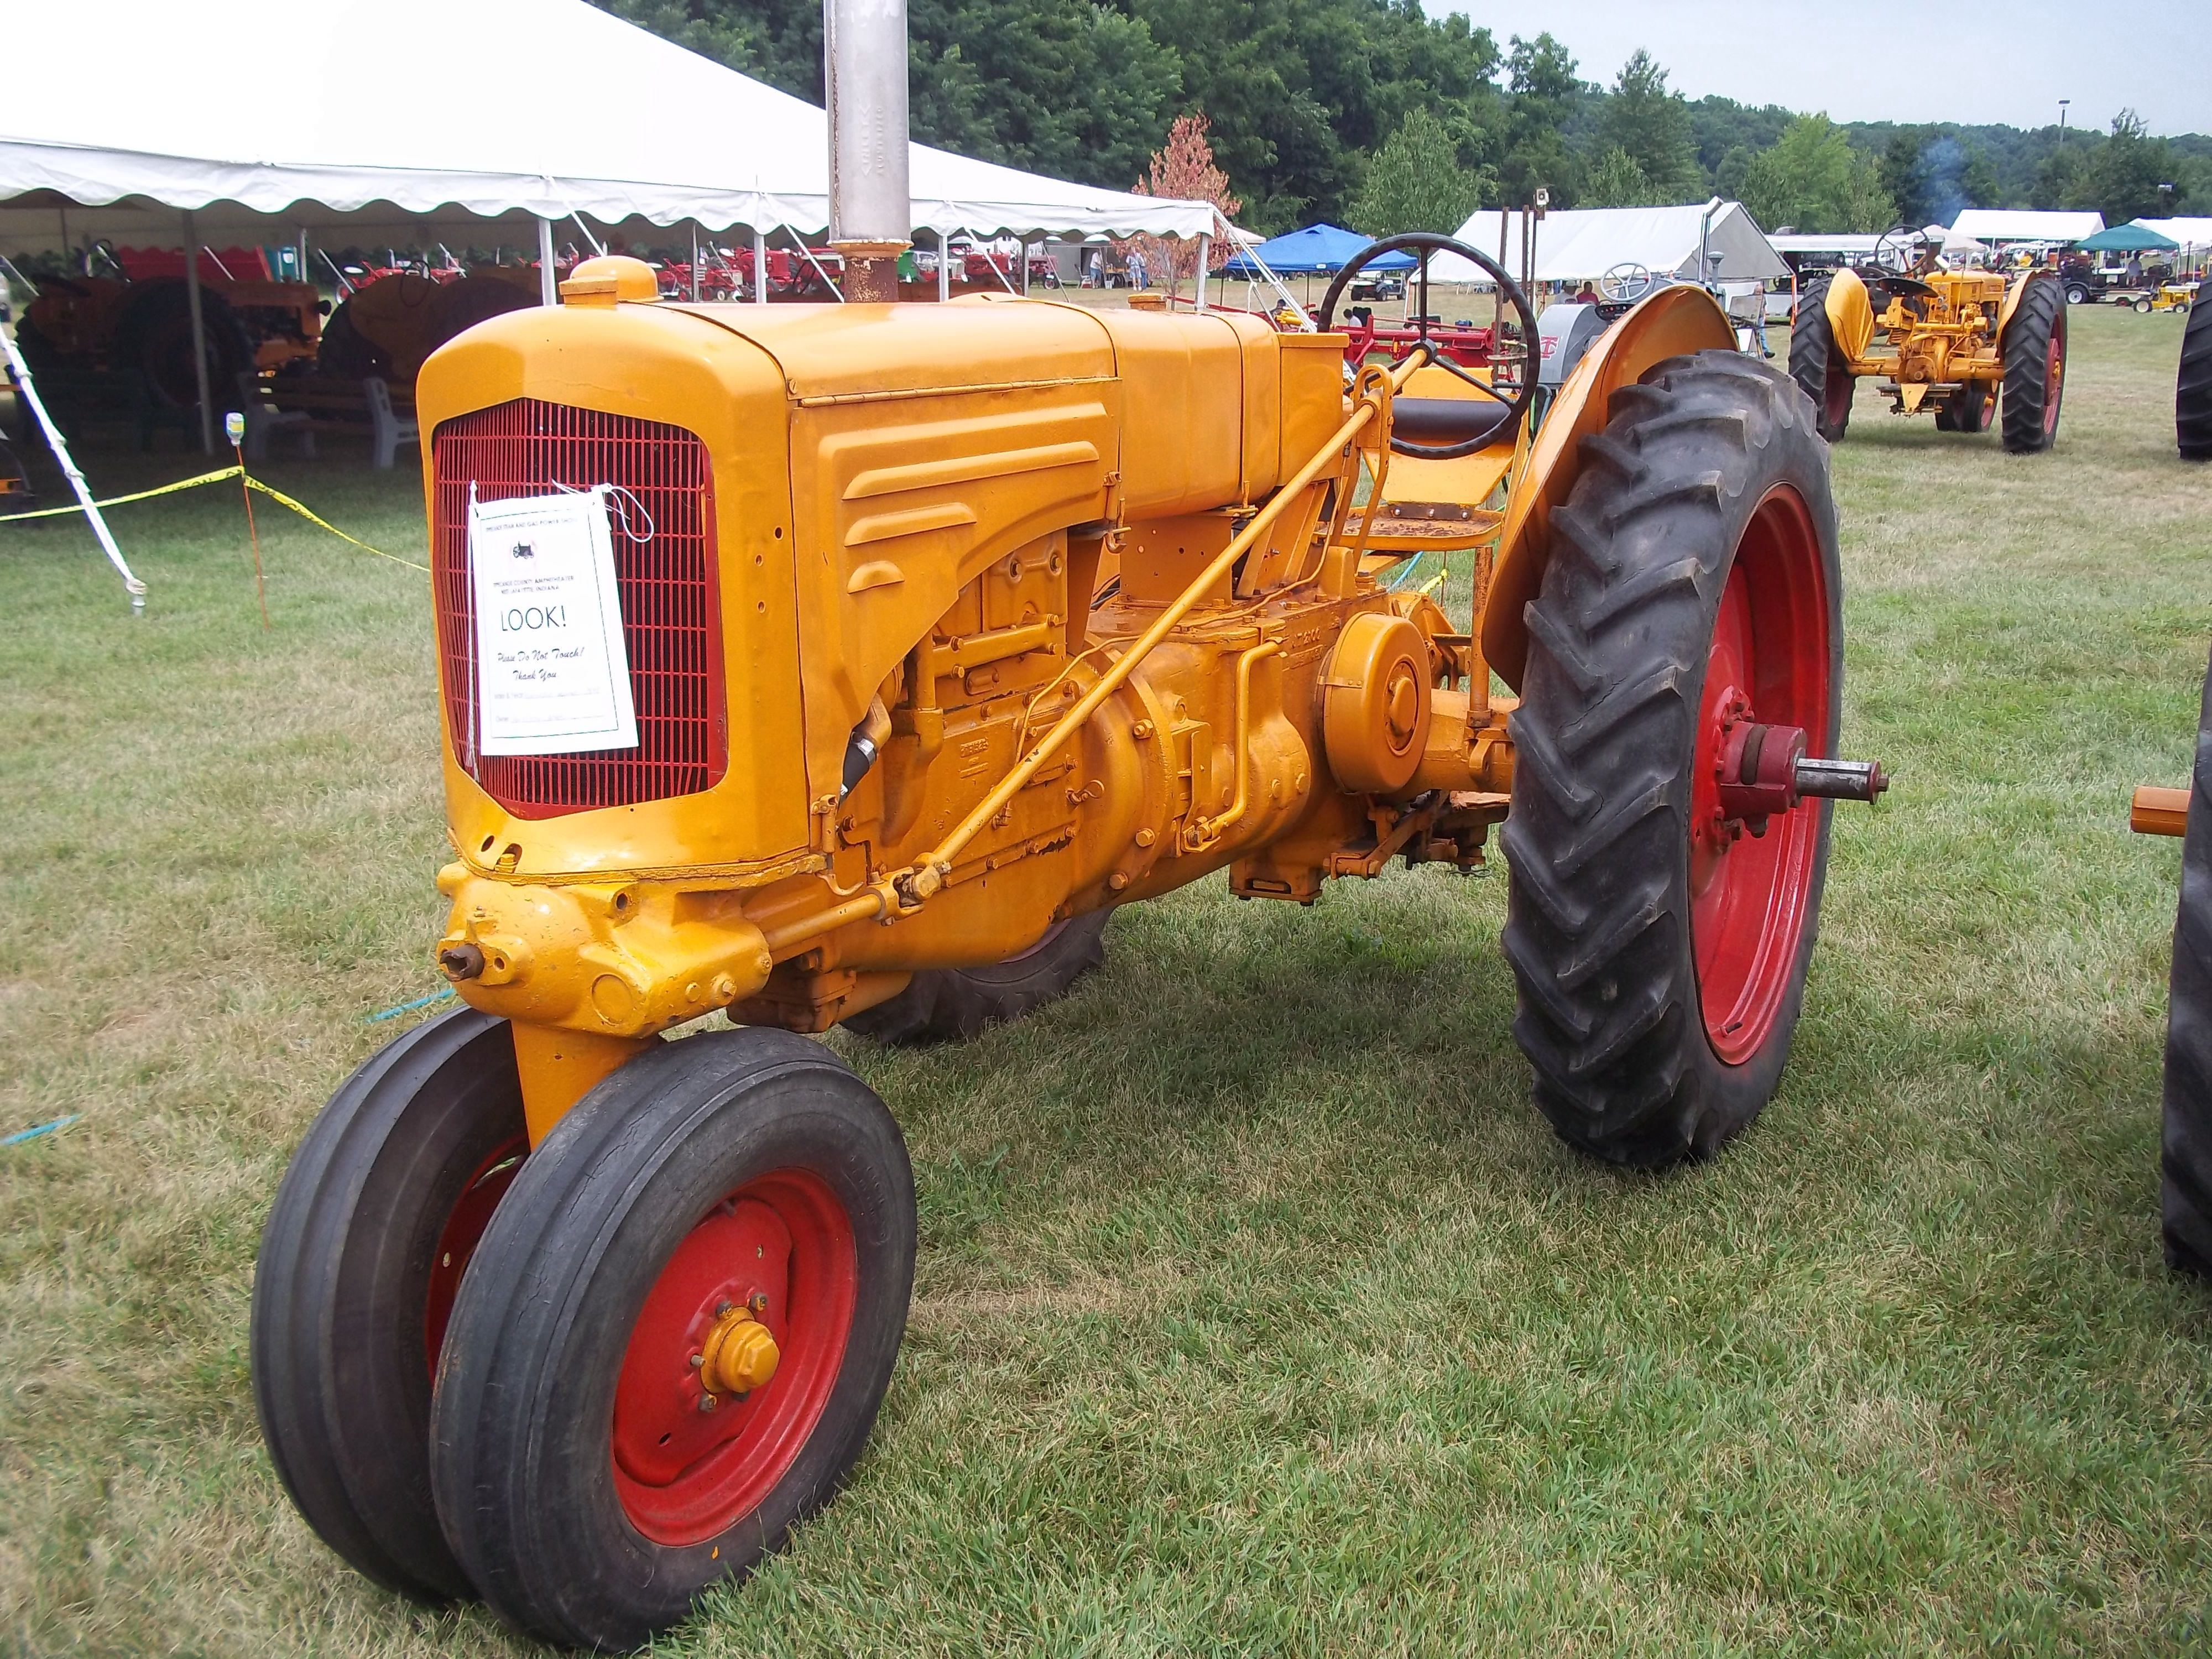 Another MM tricycle tractor Minneapolis moline, Tractors